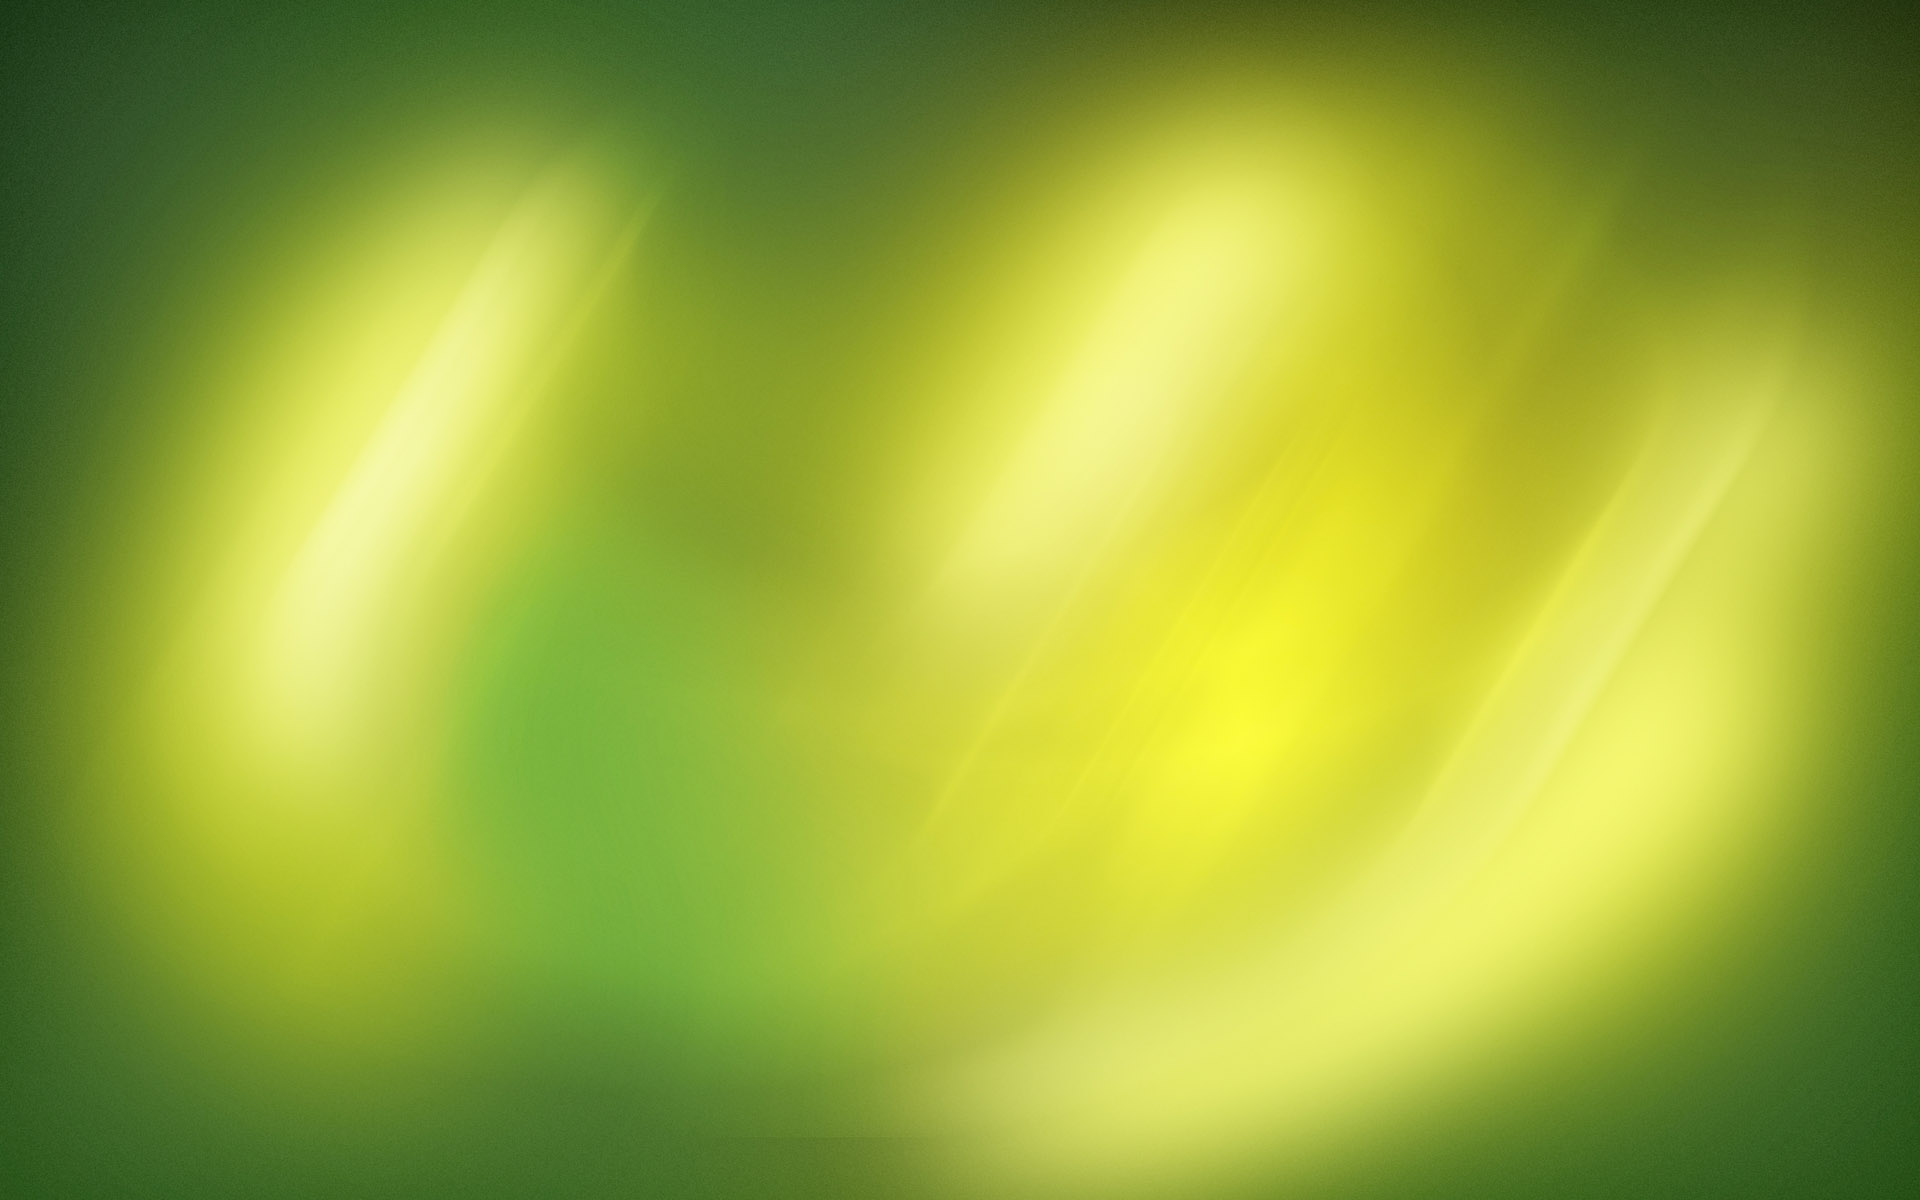 HD color background wallpaper 19533